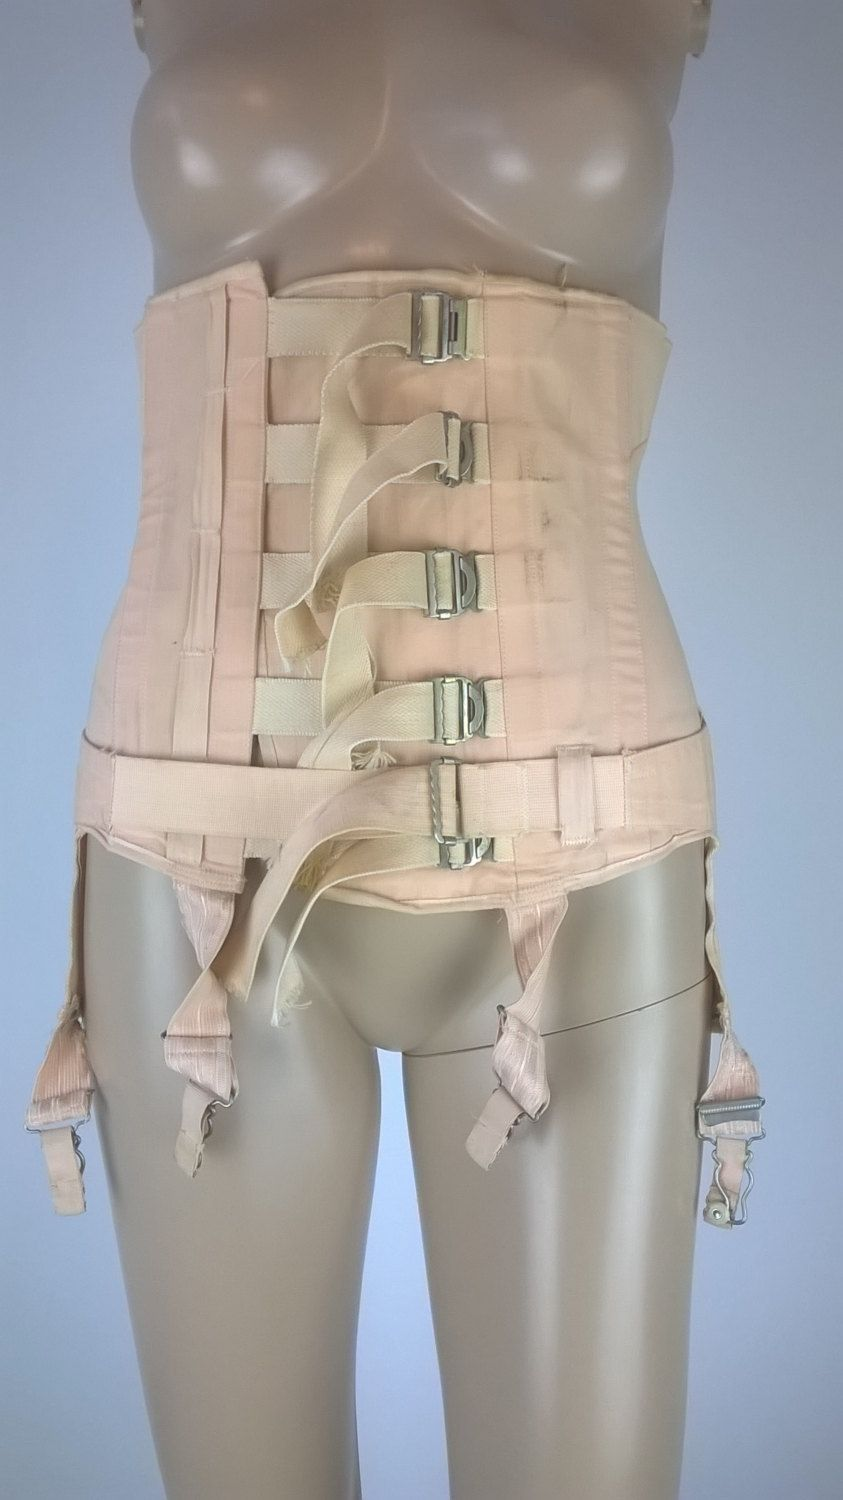 open bottom corset Vintage 1950s Boned Underbust Peach Corset 50s Surgical Corset Spencer Ltd Open  Bottom Girdle with Four Garters Six Straps Shapewear Small